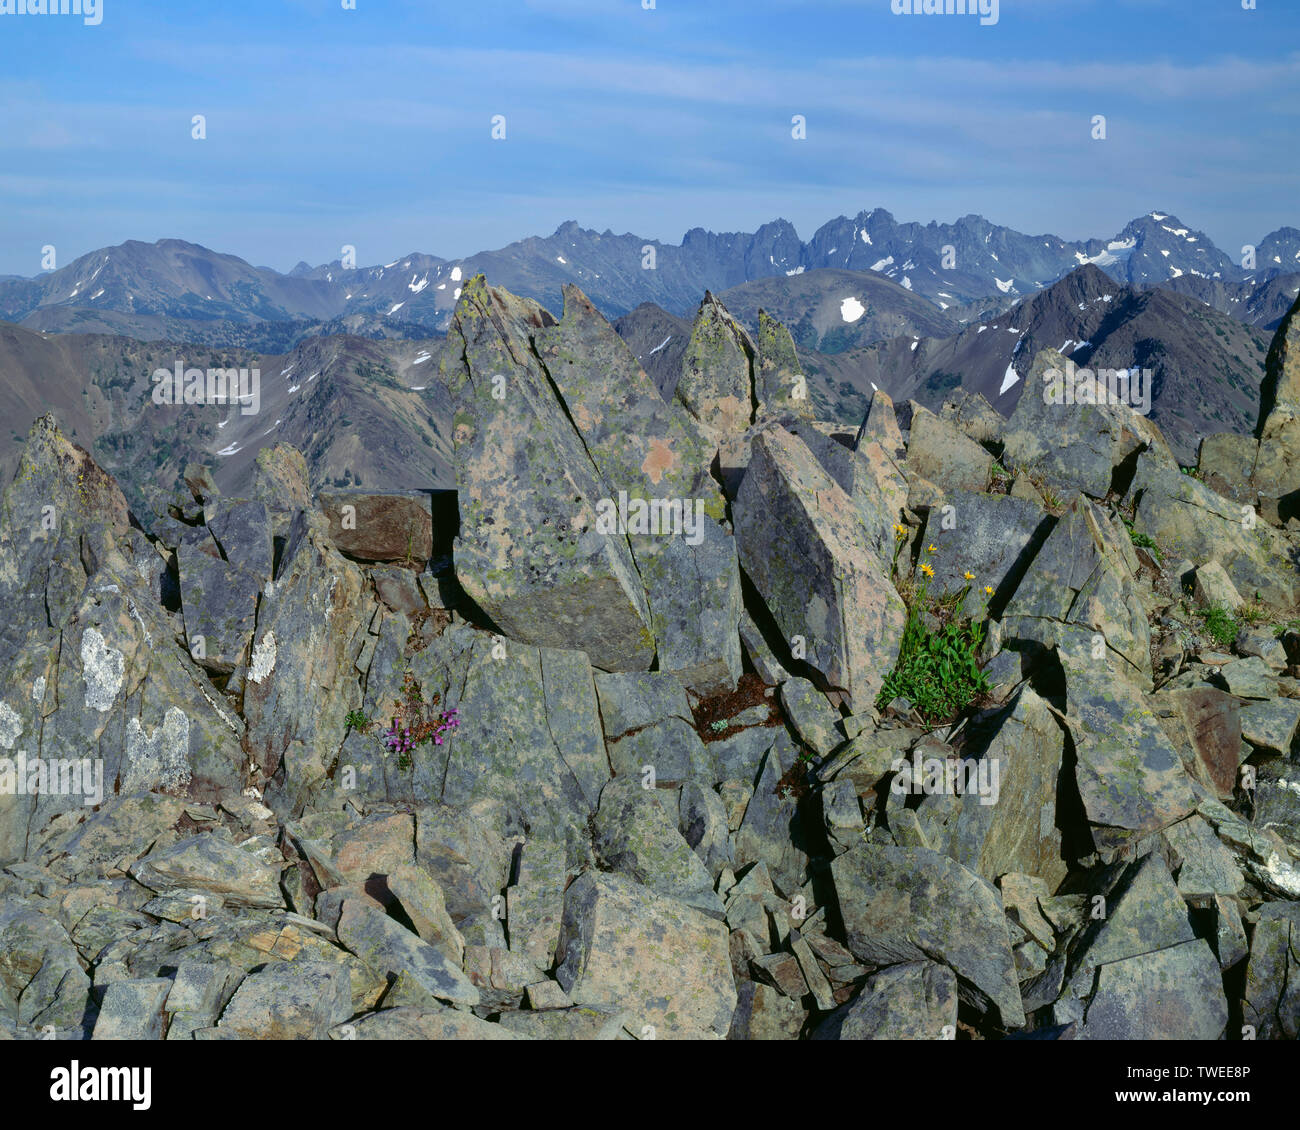 USA, Washington, Olympic National Park, Jagged boulders and easterly view of Gray Wolf Ridge and The Needles in the distance, Olympic Mountains. Stock Photo